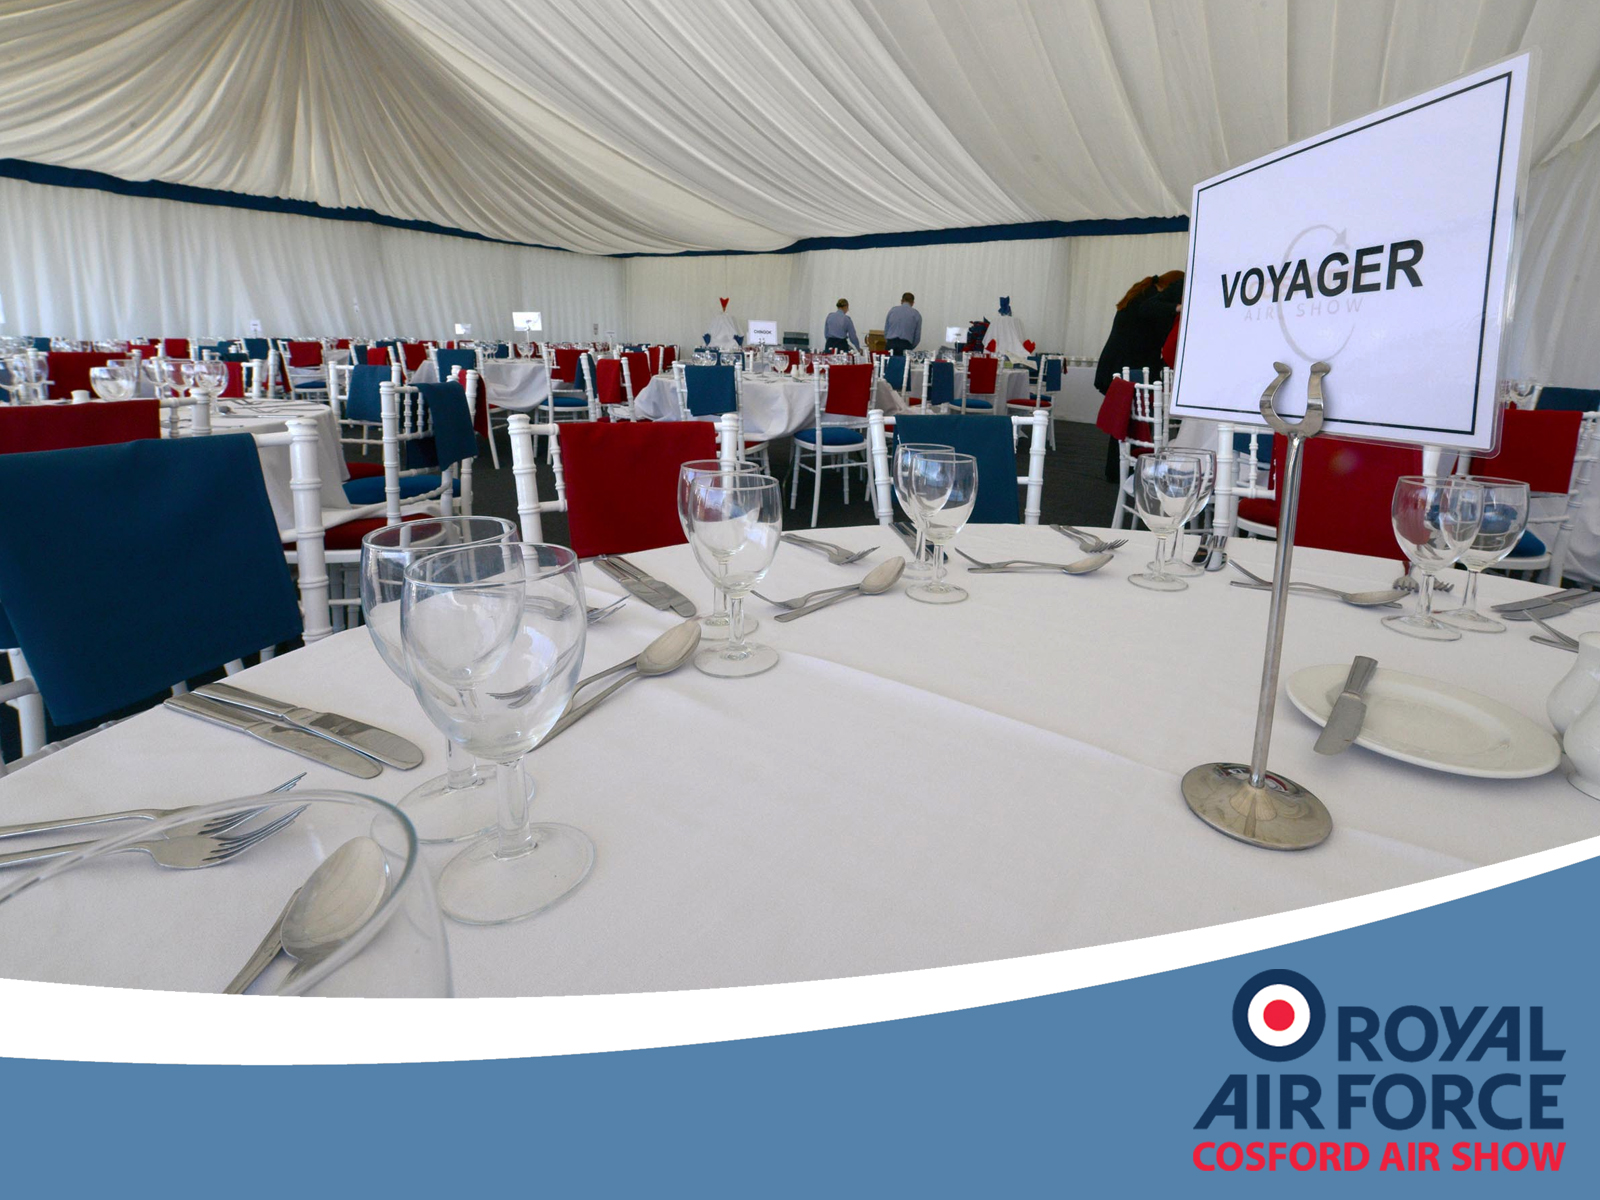 AIRSHOW NEWS: RAF Cosford Air Show hospitality makes perfect present for Fathers Day